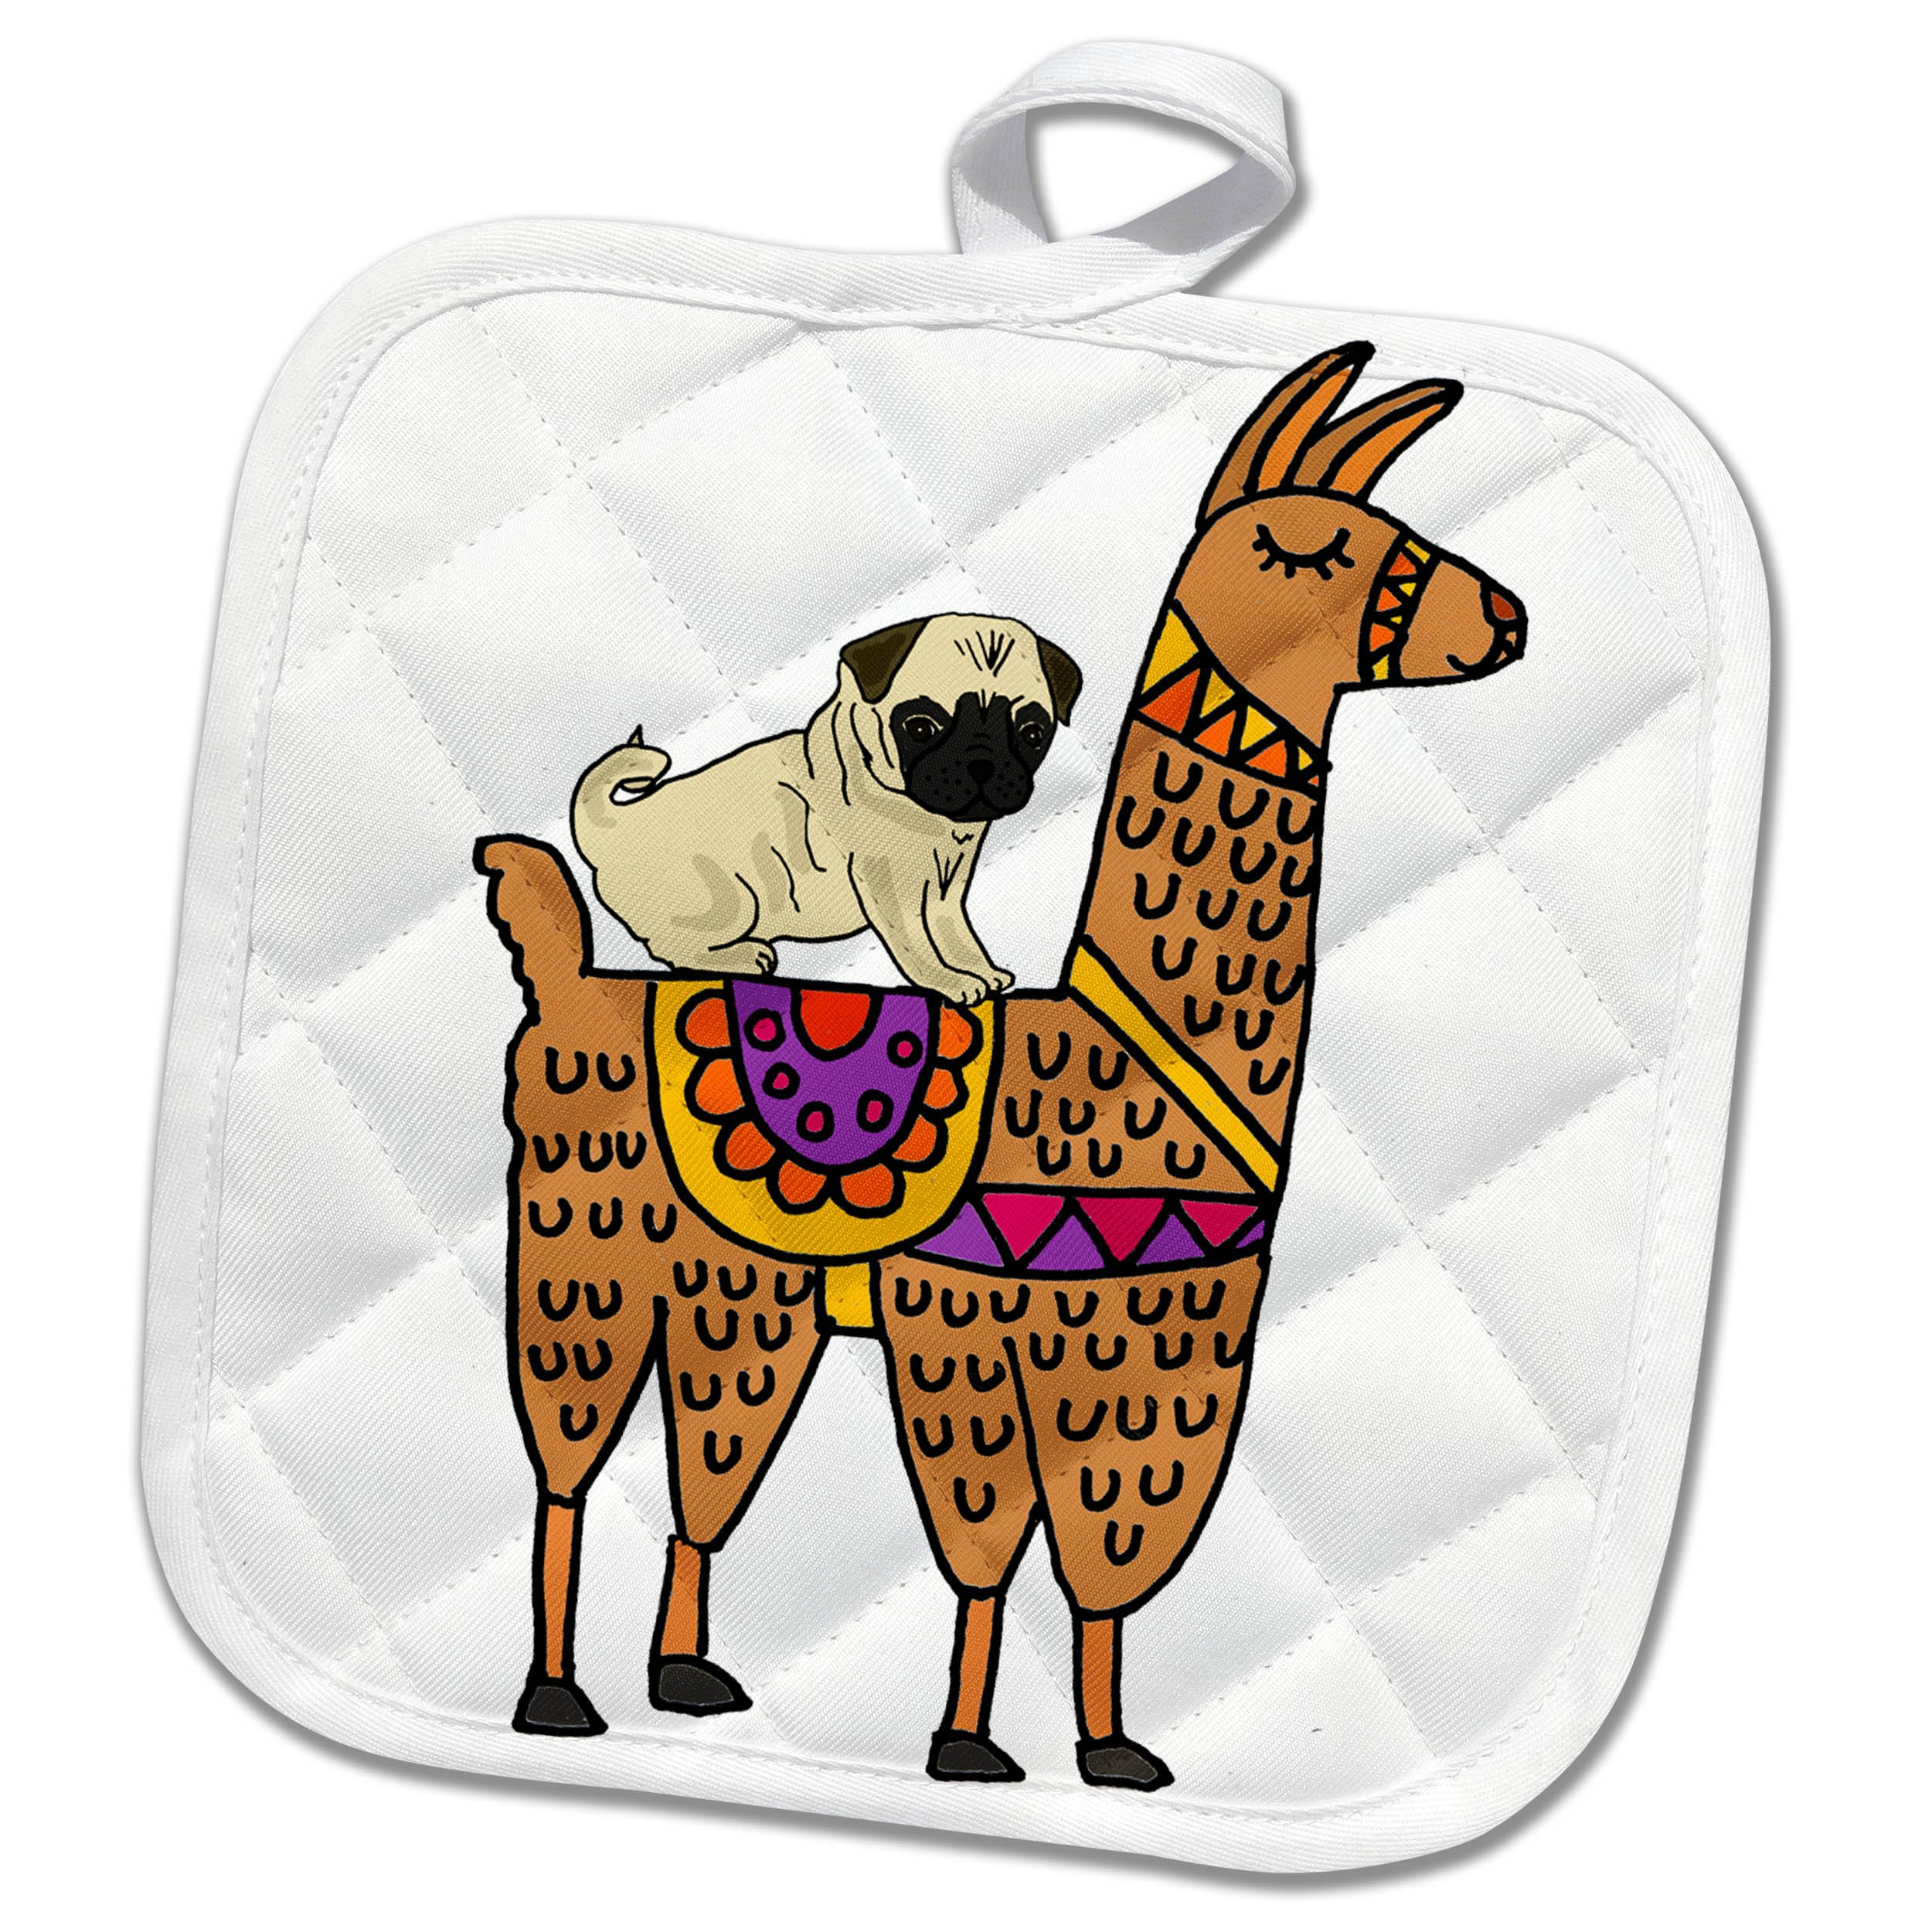 3dRose phl_270099_1 Pot Holder Cool Humorous Pug Dog Riding llama Cartoon, 8 by 8'' by 3dRose